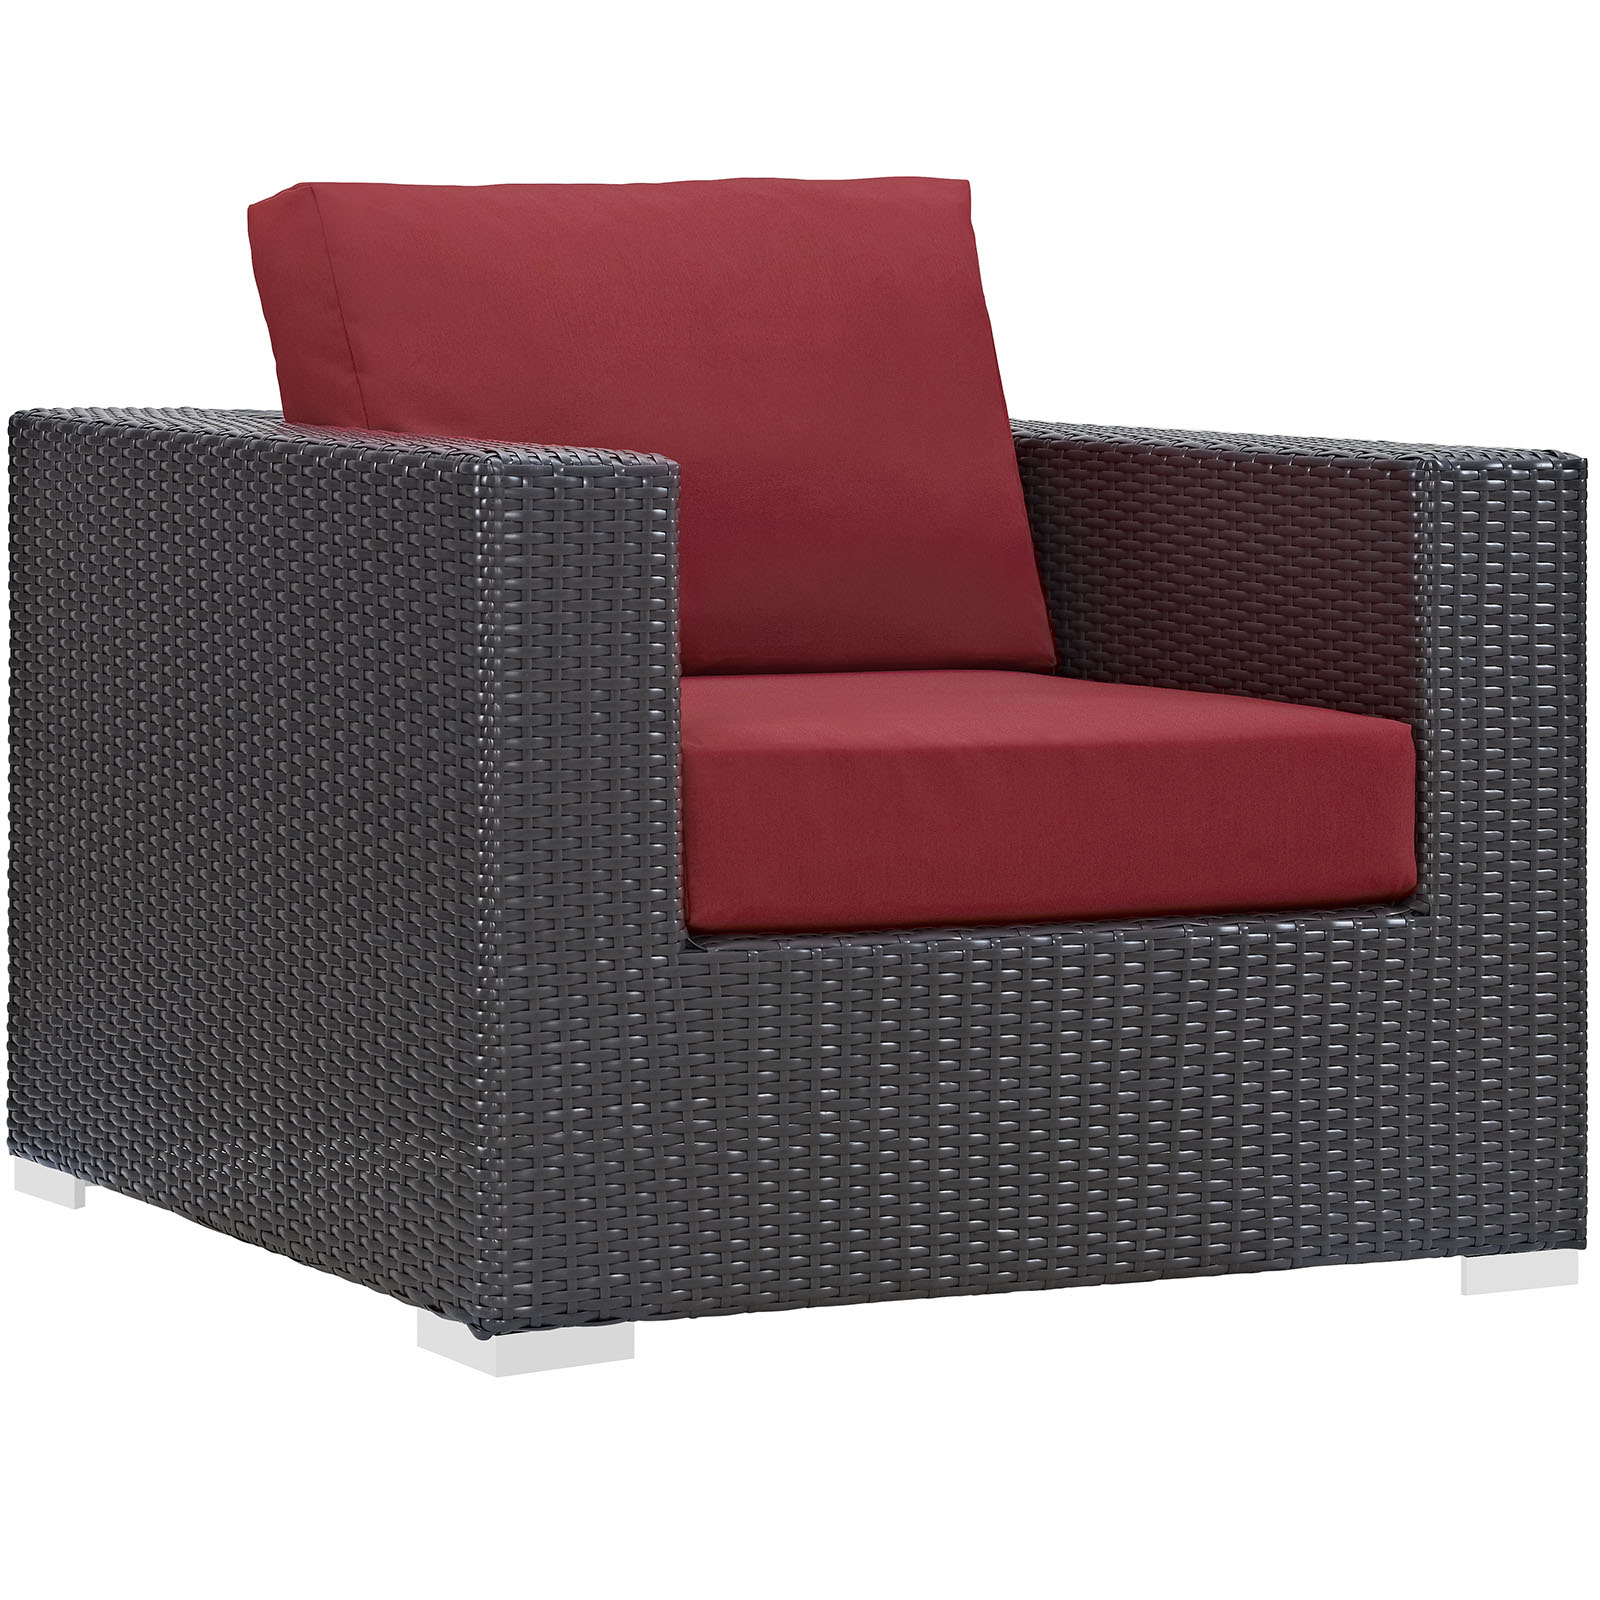 Modern Contemporary Urban Design Outdoor Patio Balcony Lounge Chair, Red, Rattan